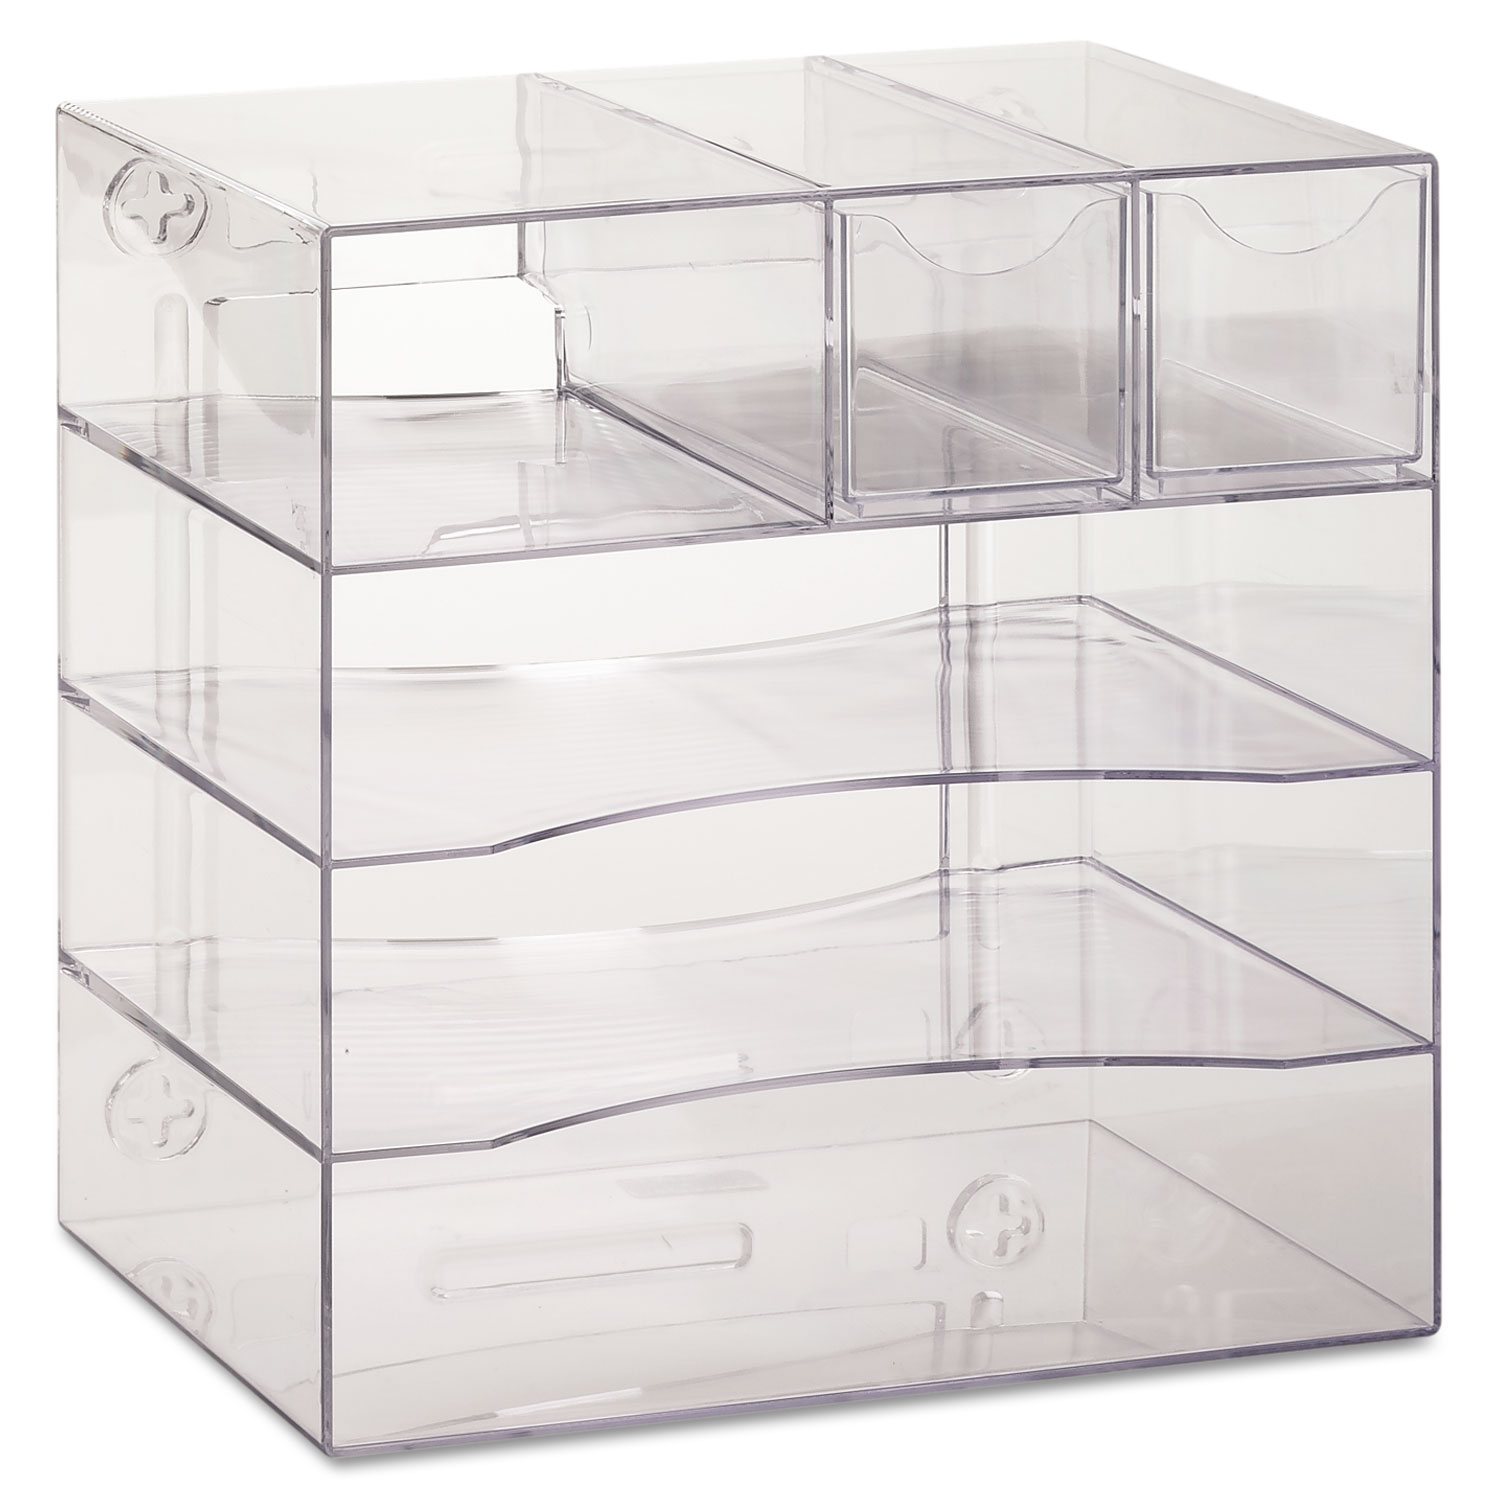 Optimizers Four Way Organizer With Drawers By Rubbermaid